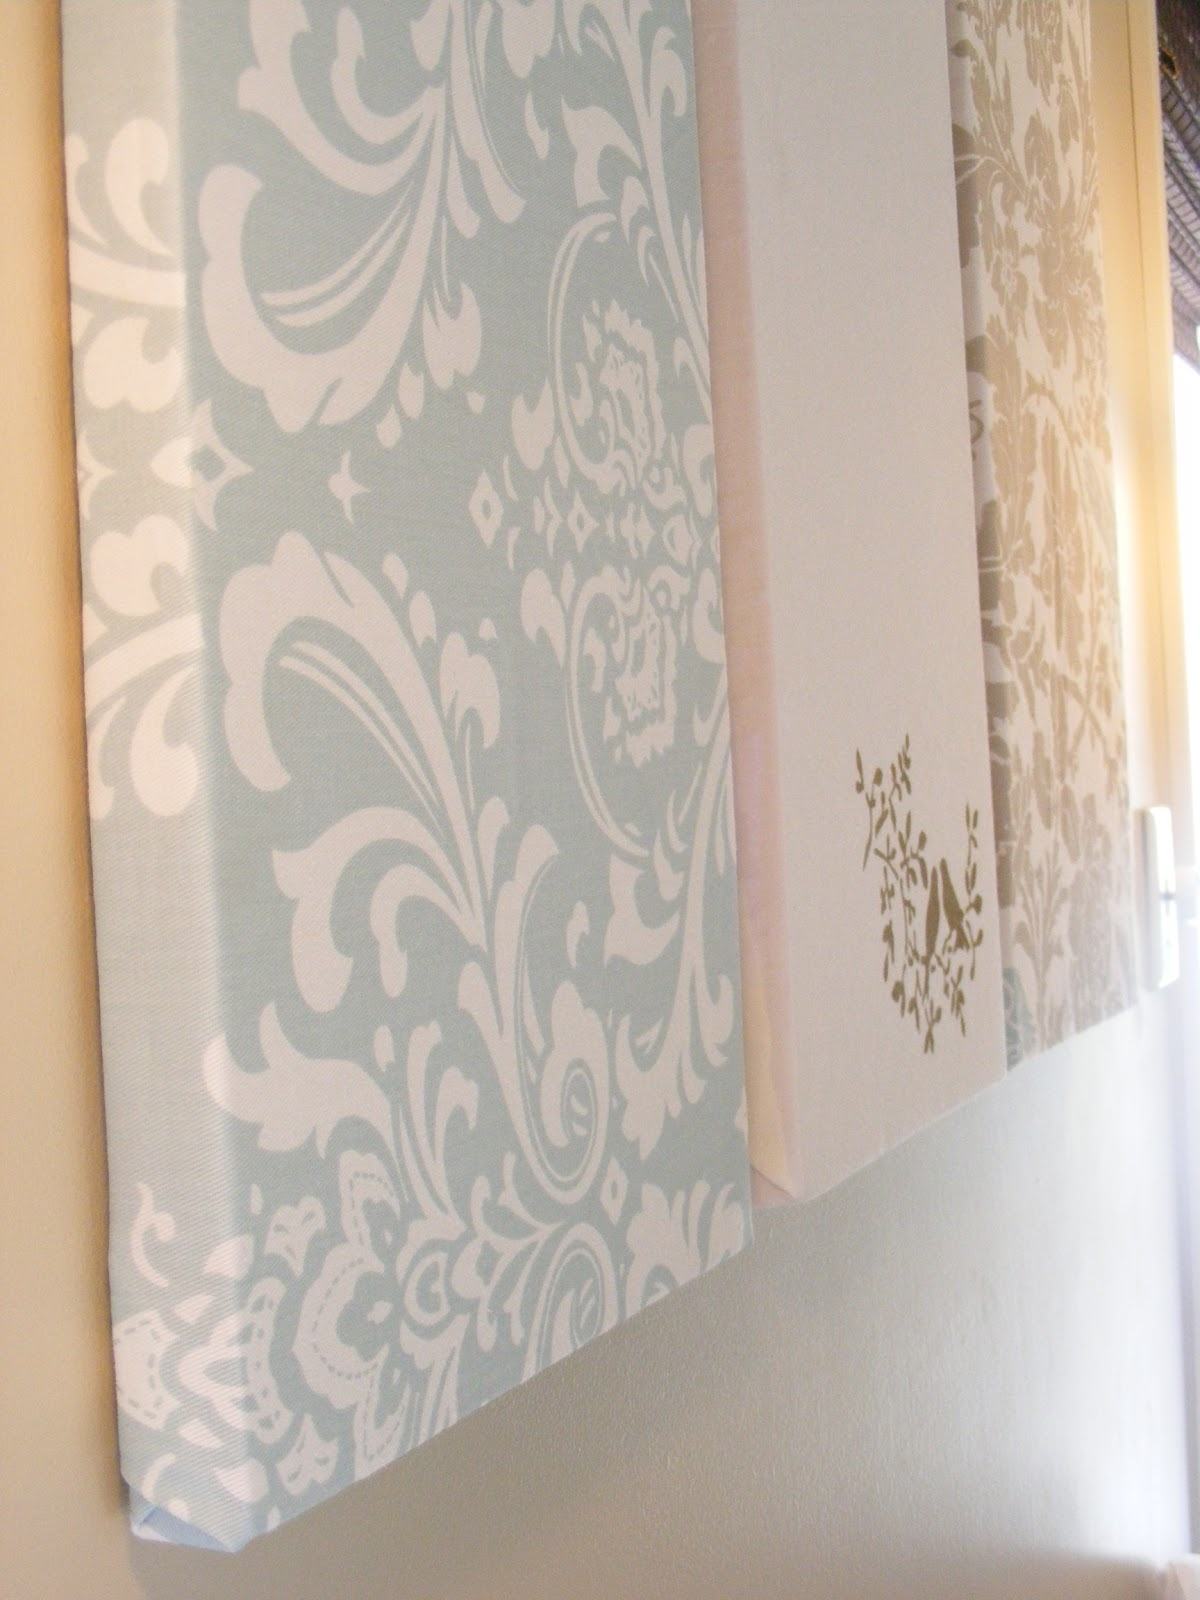 The Complete Guide To Imperfect Homemaking: Simple, Thrifty Diy Art Inside Newest Styrofoam Fabric Wall Art (Gallery 4 of 15)